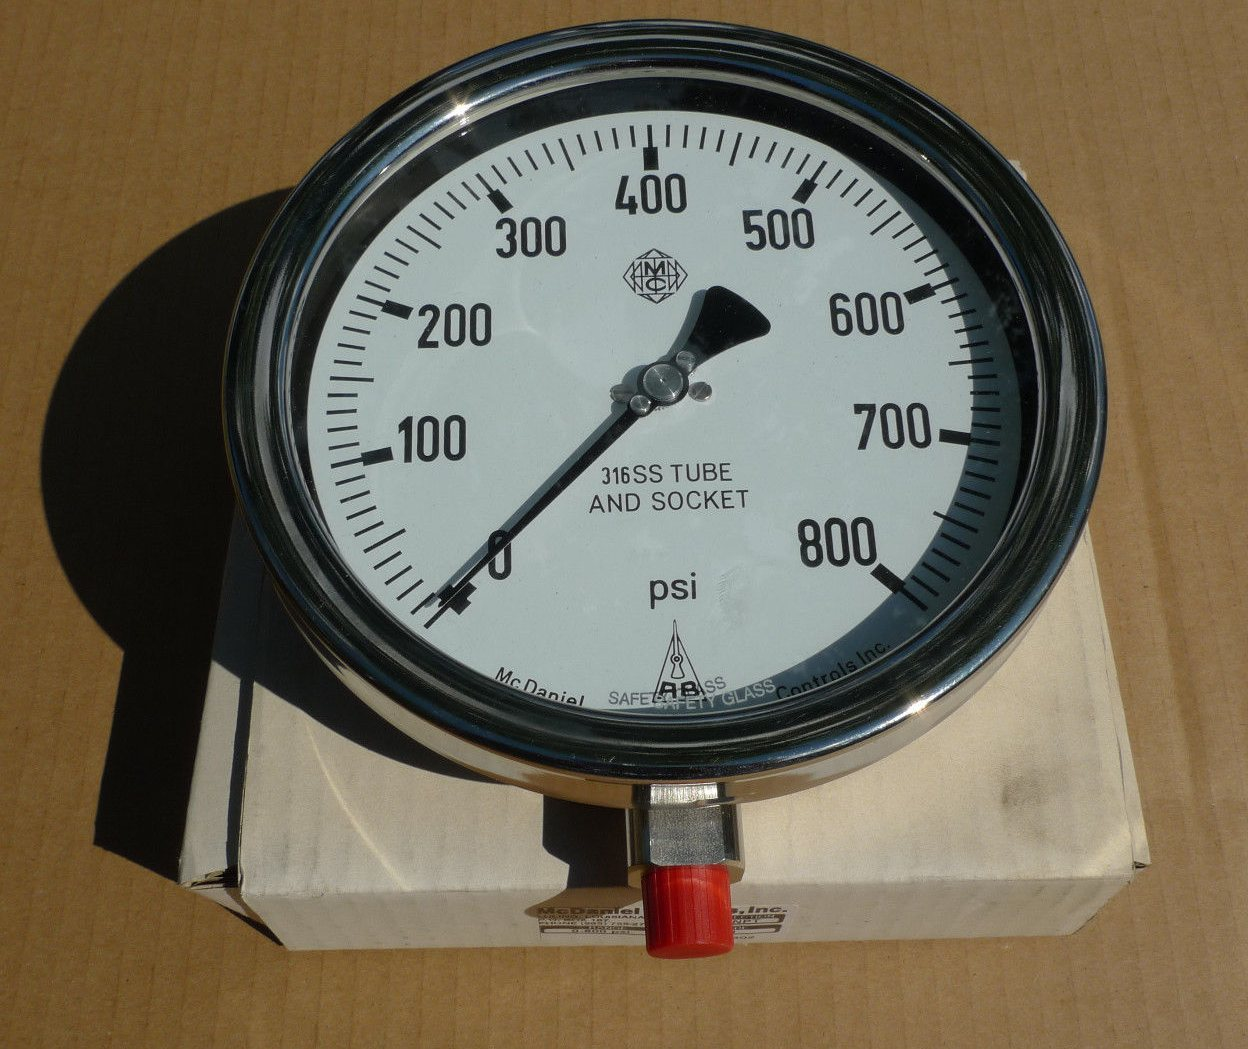 Diesel_Compression_Gauge_07b.jpg